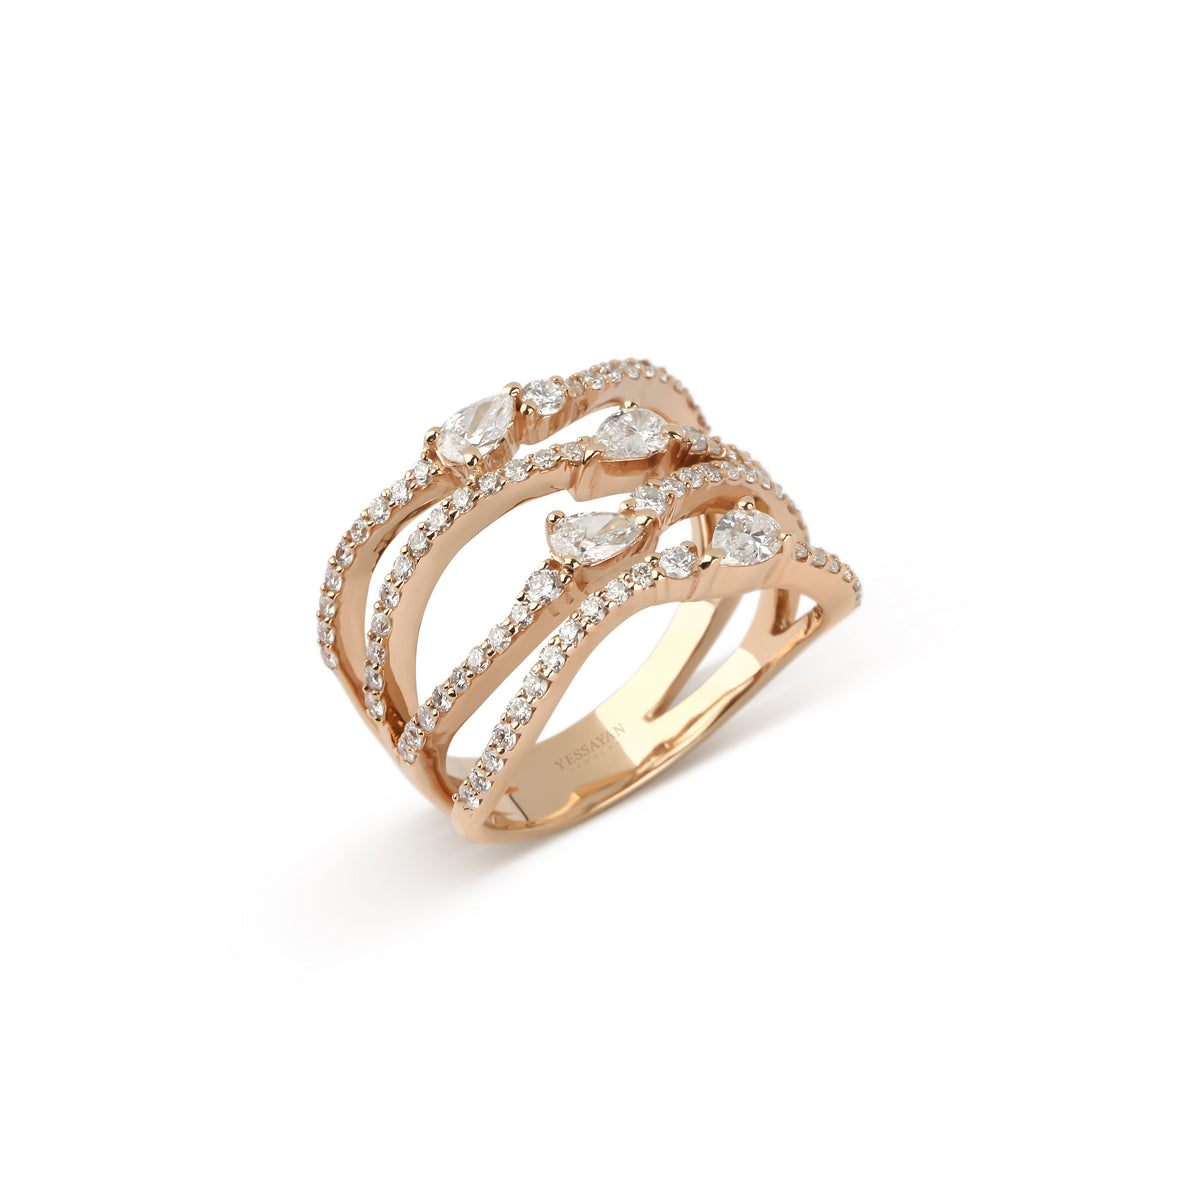 Rose Gold Pear & Round Diamond Ring